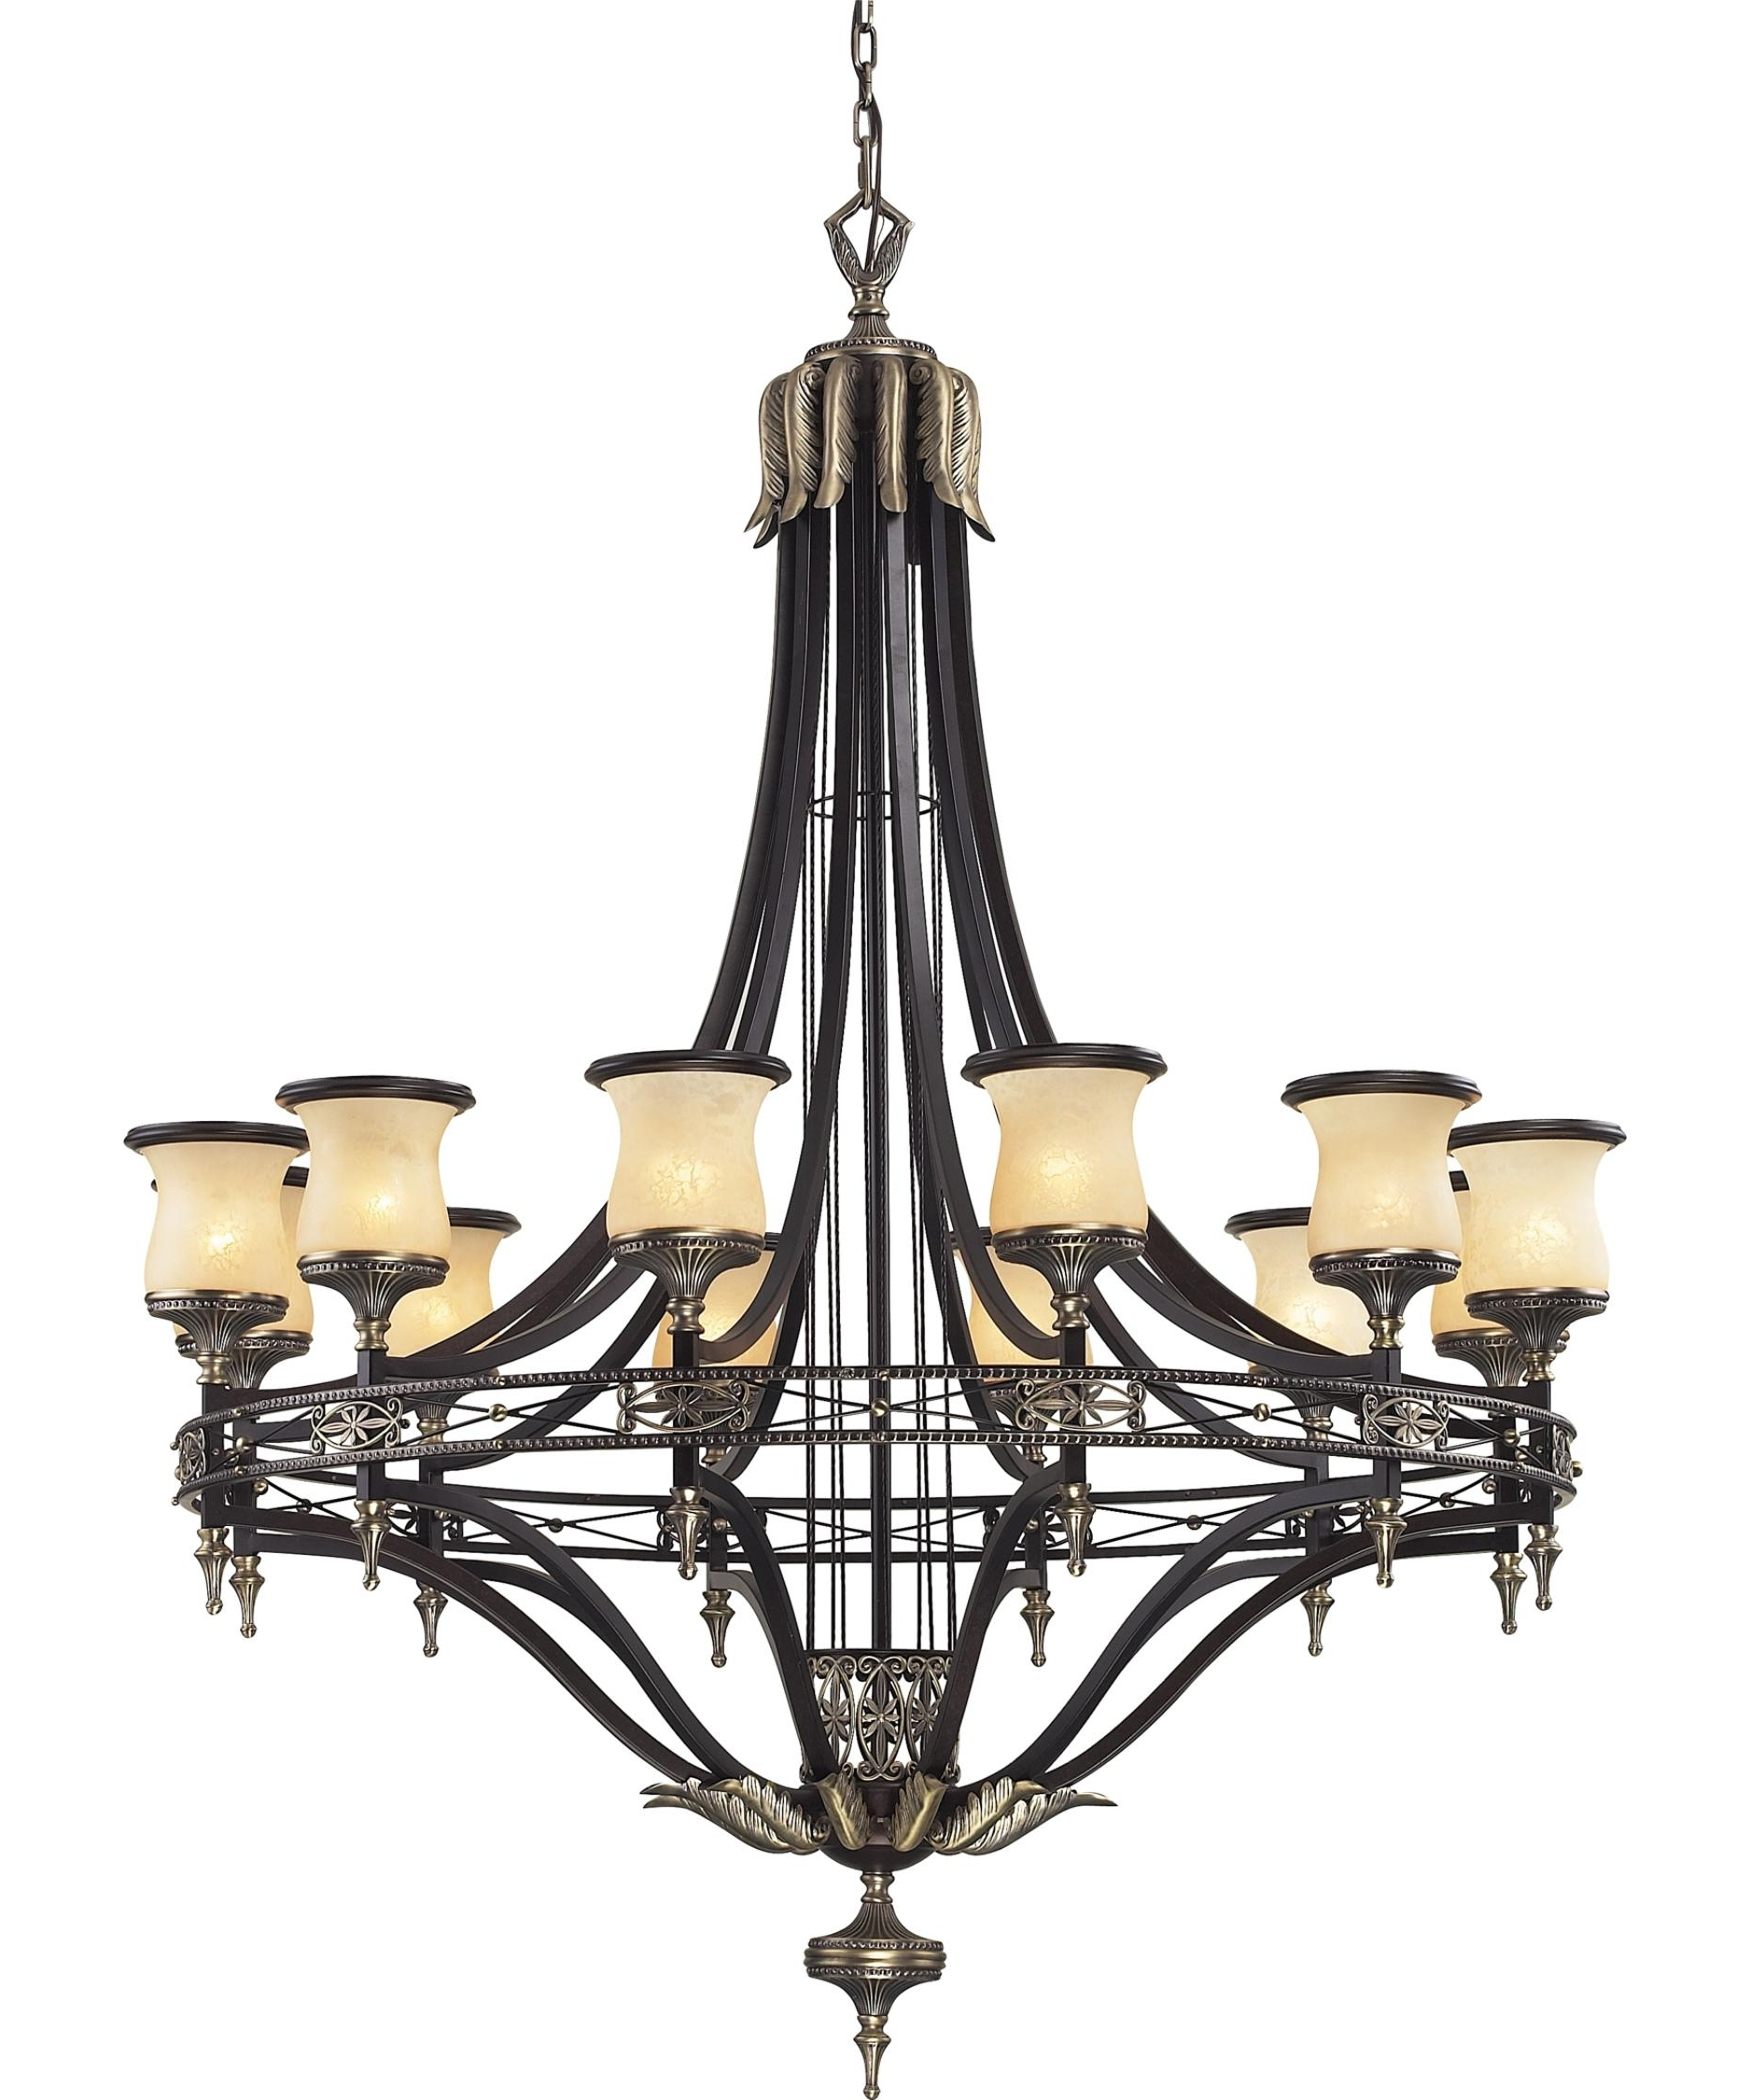 Elk Lighting 2434 12 Georgian Court 48 Inch Wide 12 Light Chandelier With Regard To Recent Georgian Chandeliers (Gallery 5 of 20)